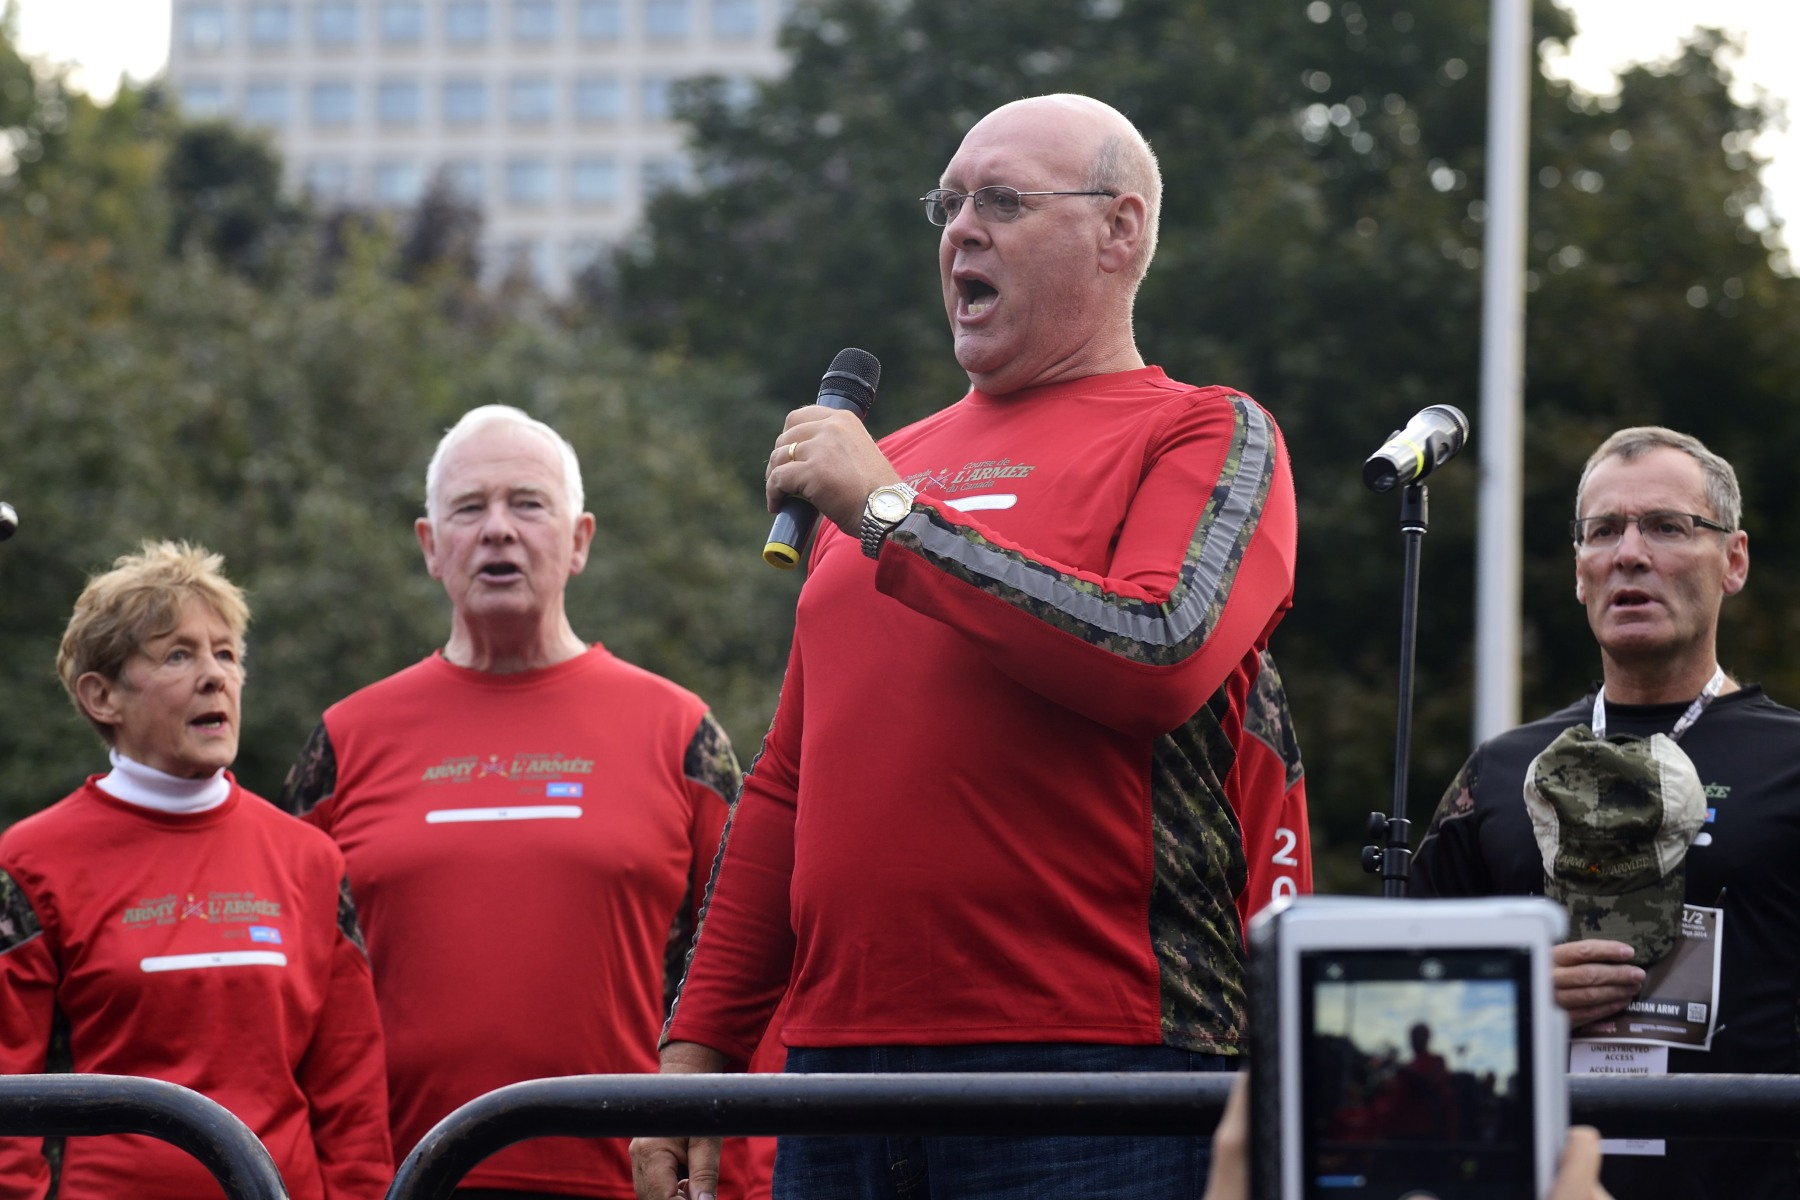 Retired police officer Lyndon Slewidge sang the national anthem before the official start of the 5-kilometre and half-marathon races.